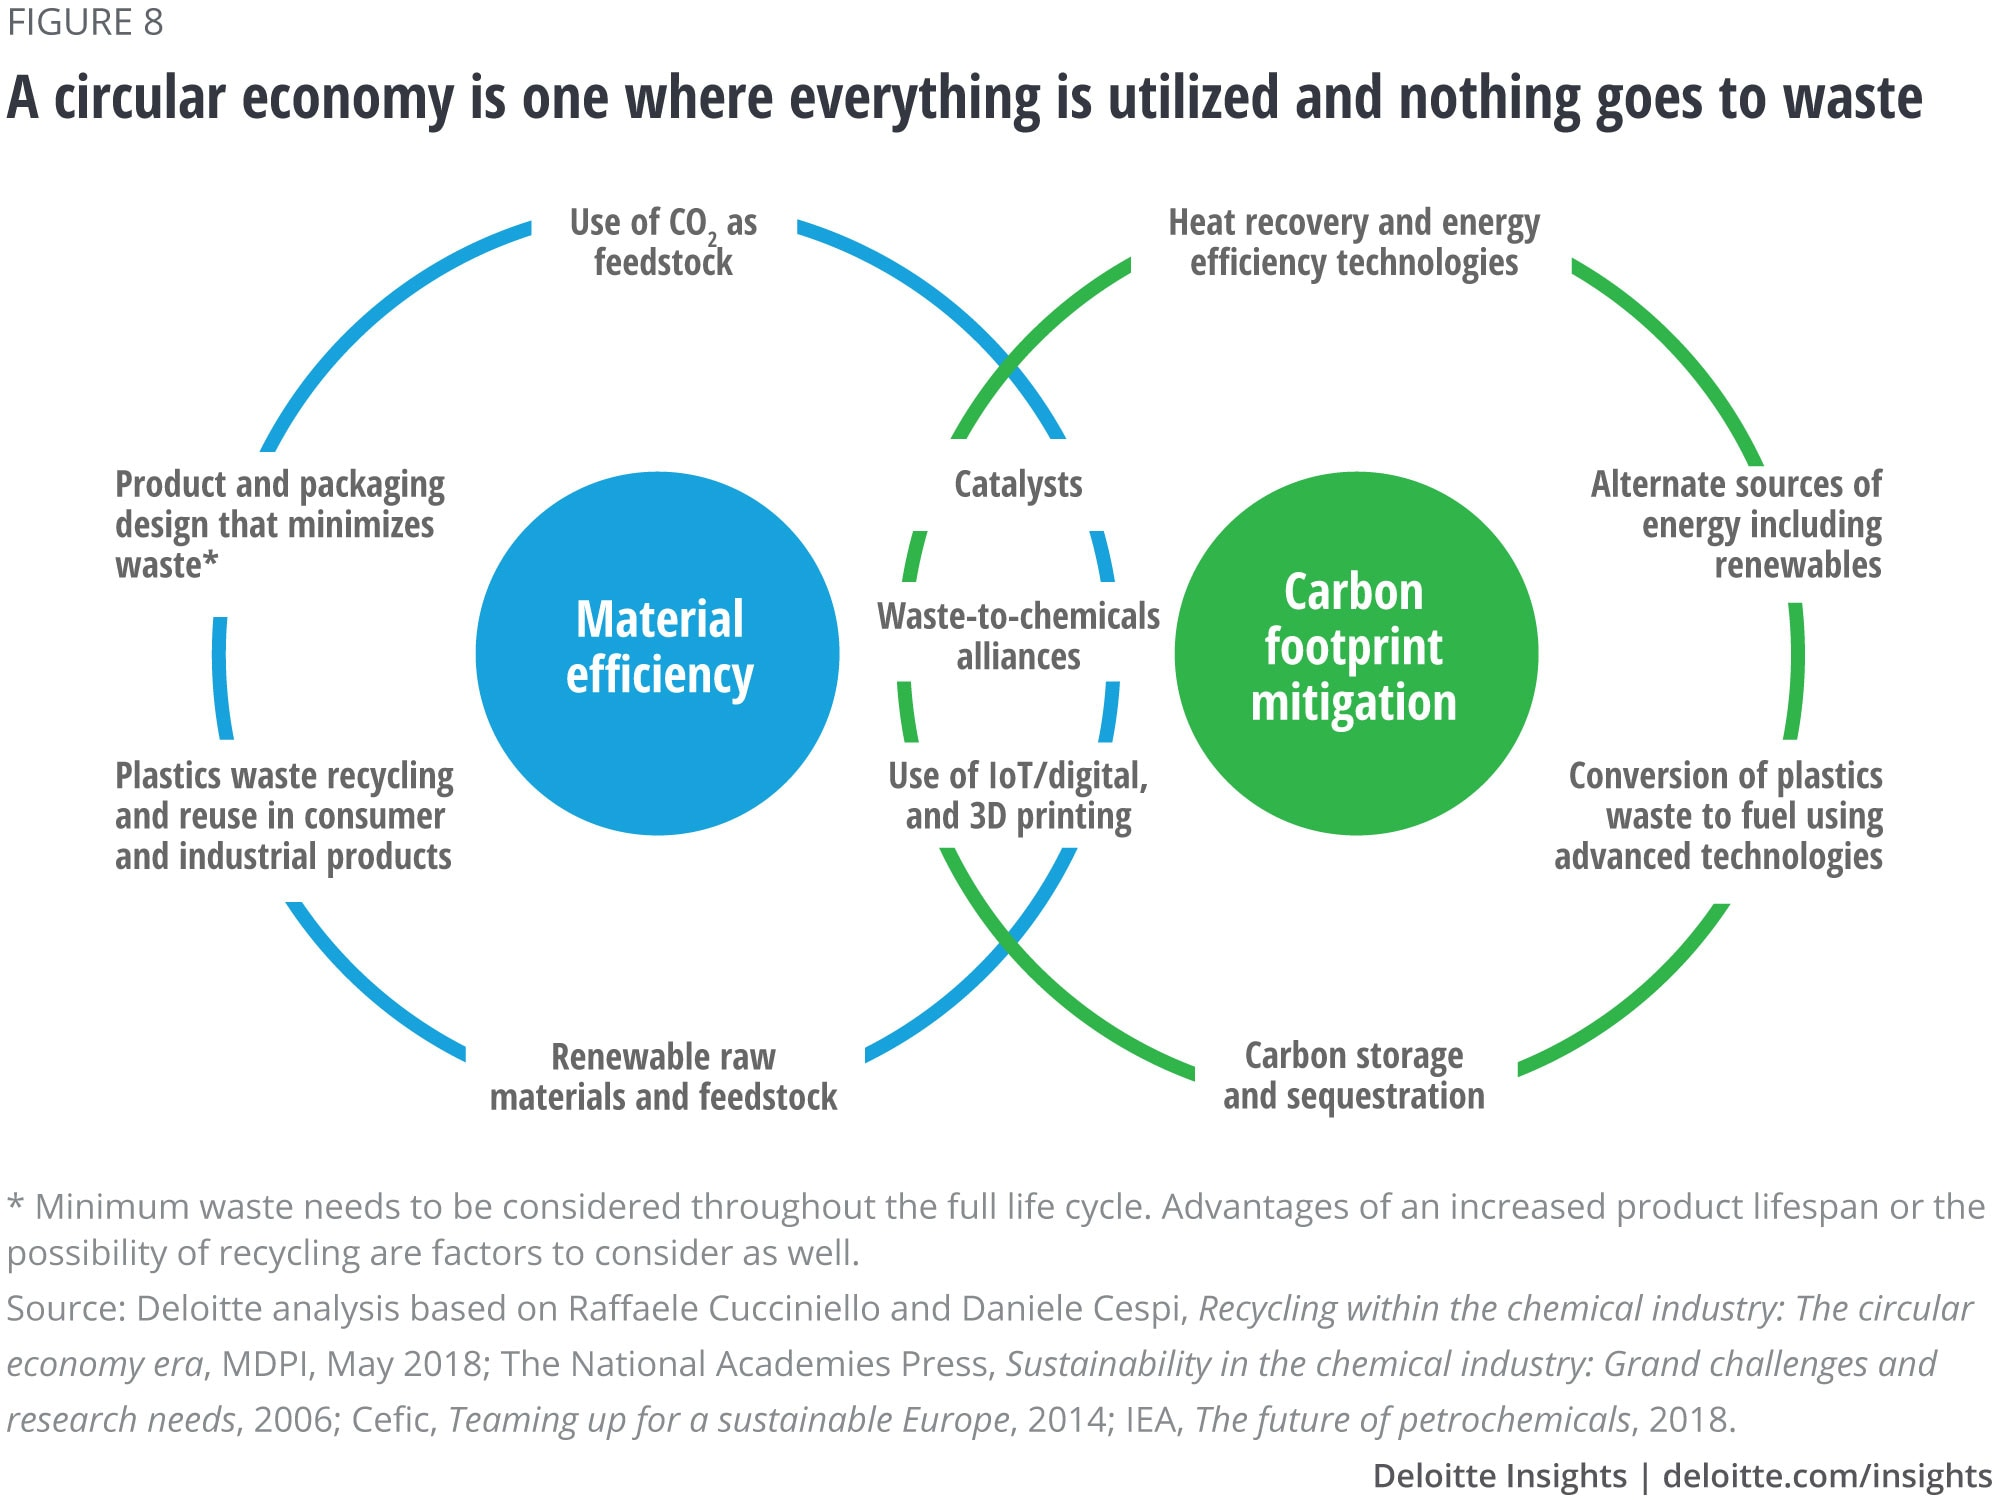 A circular economy is one where everything is utilized and nothing goes to waste